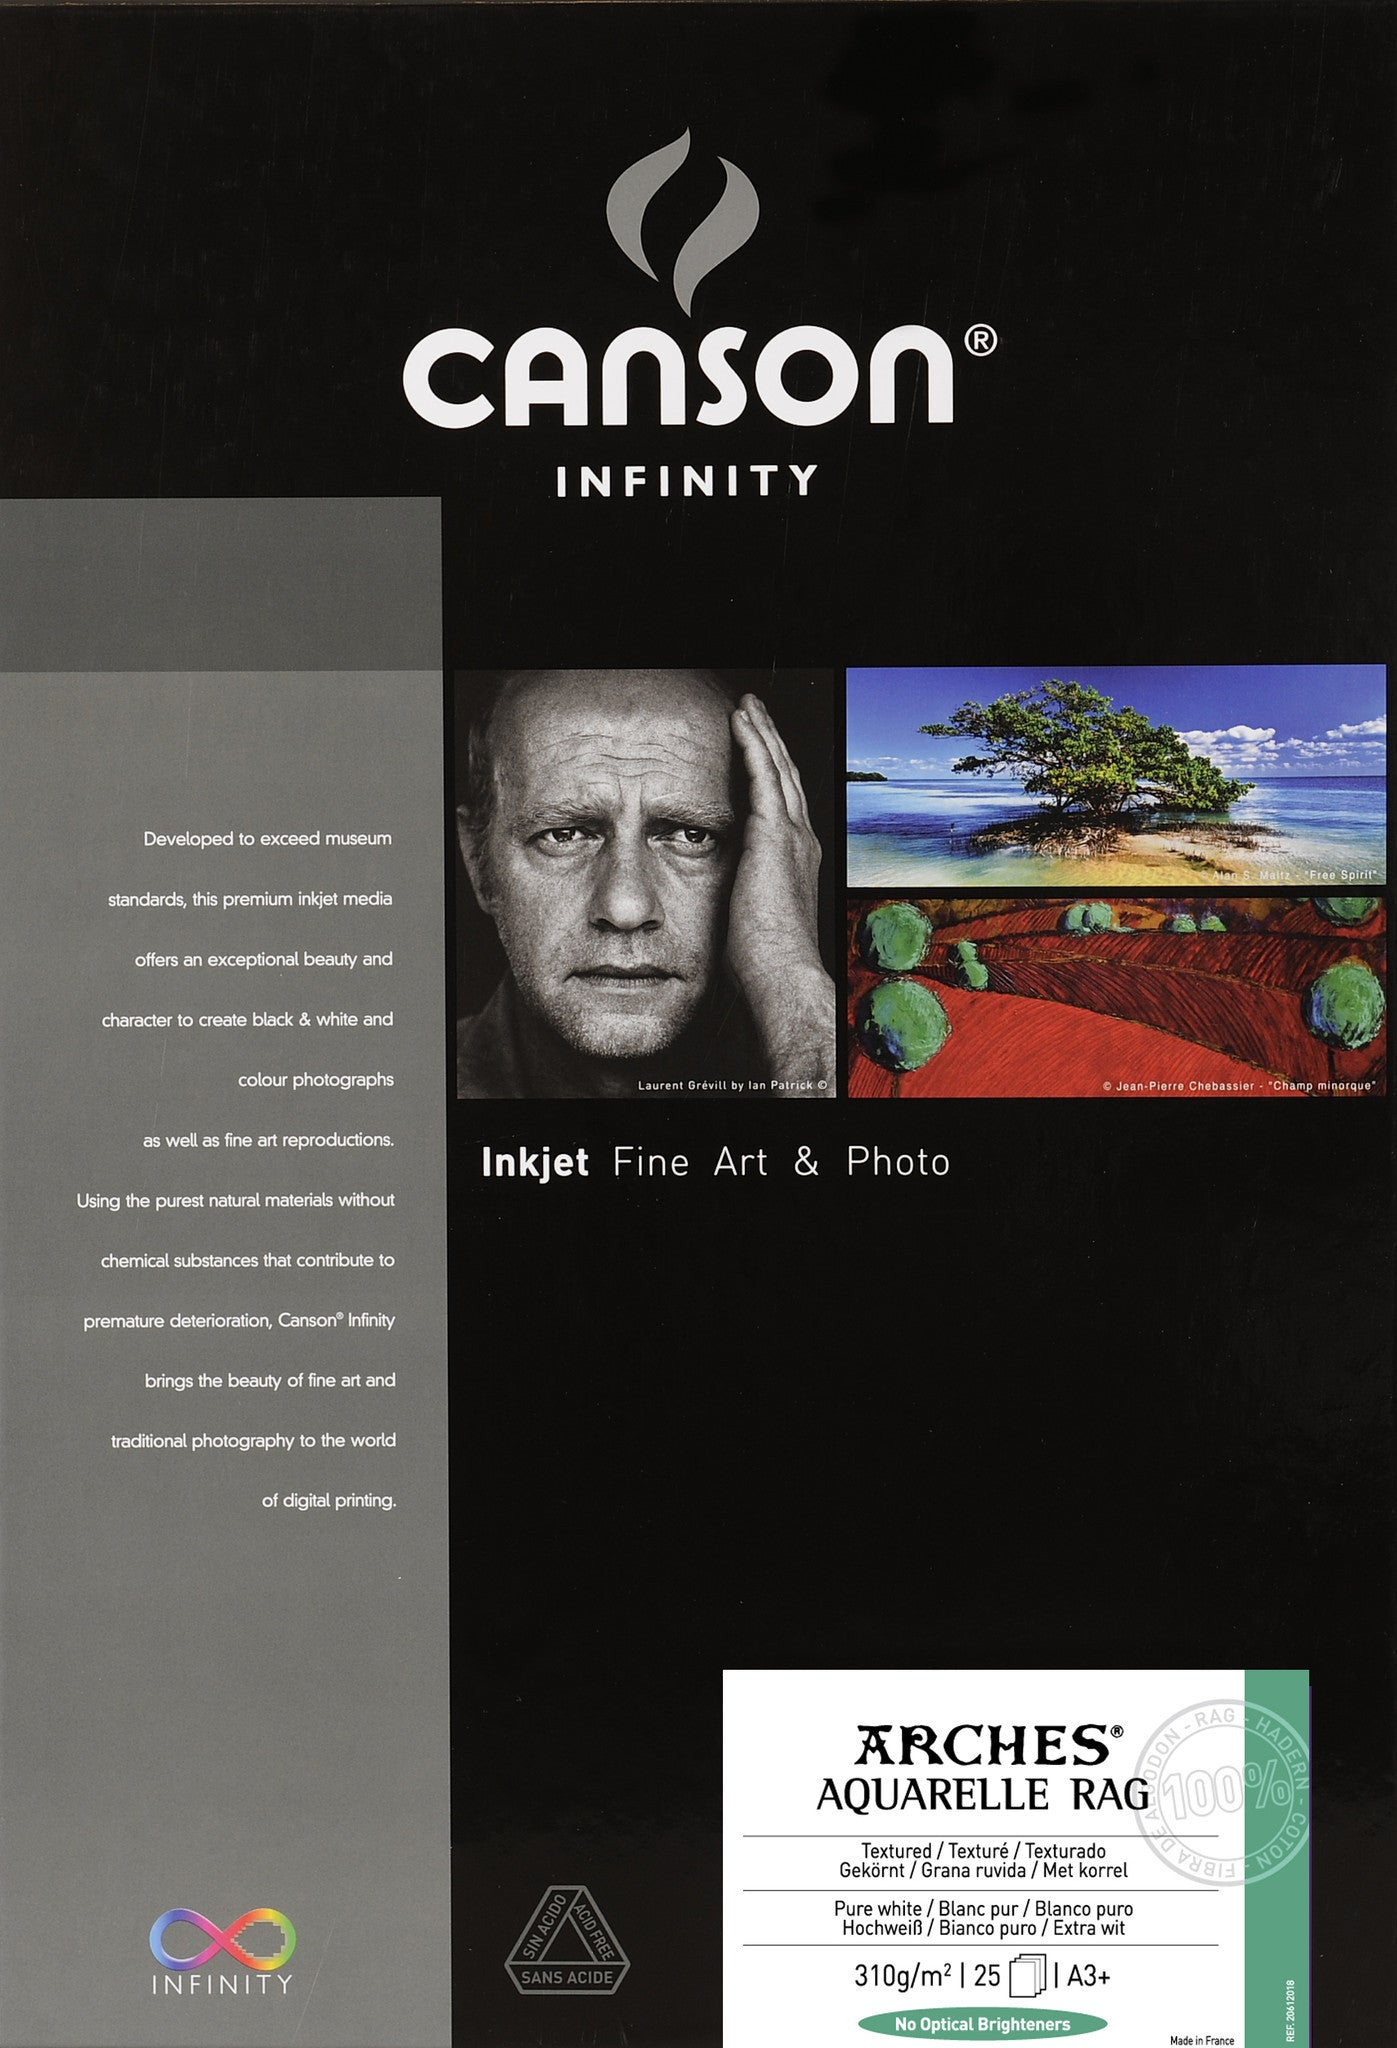 Canson Infinity Aquarelle Rag - 310gsm - A3+ (25 sheets)